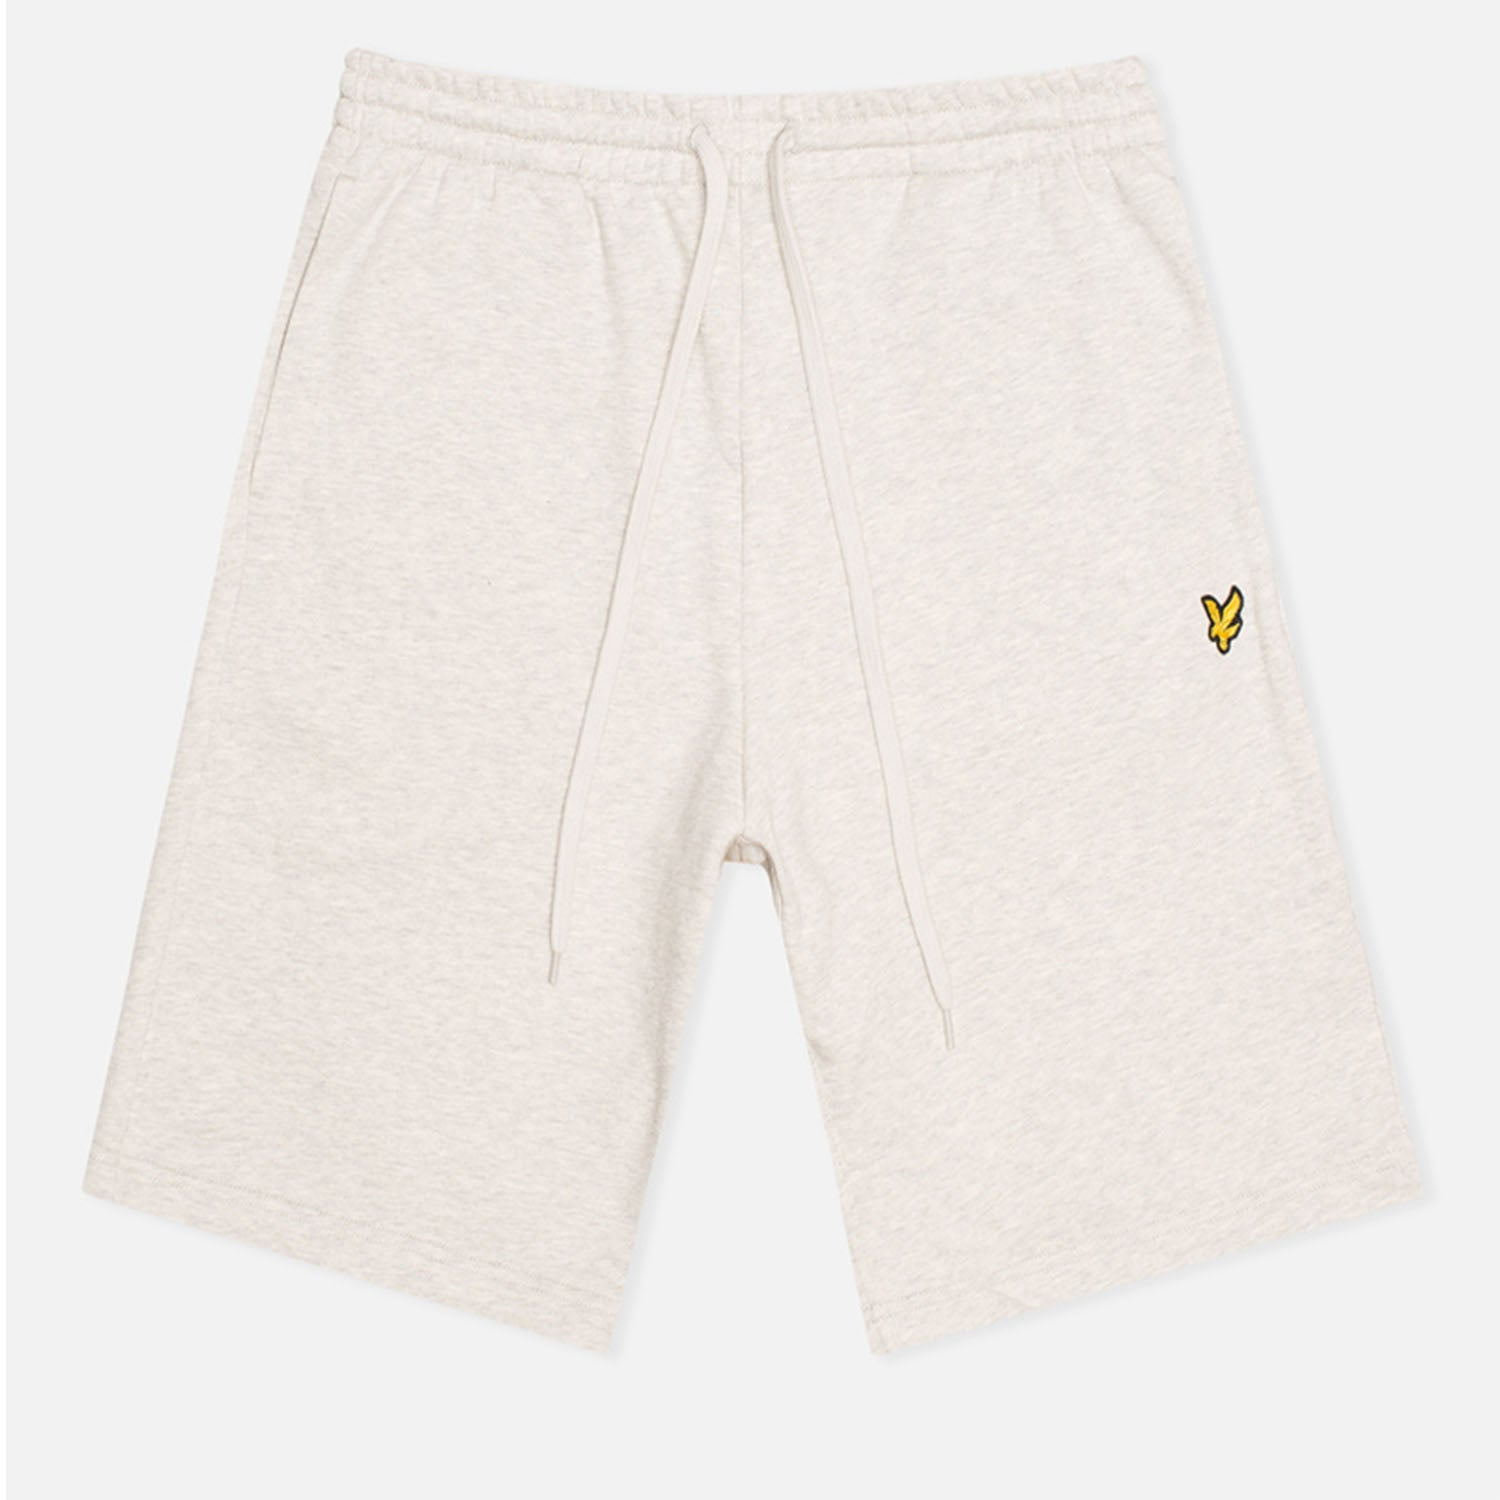 Lyle & Scott Cotton Fleece Sweat Shorts